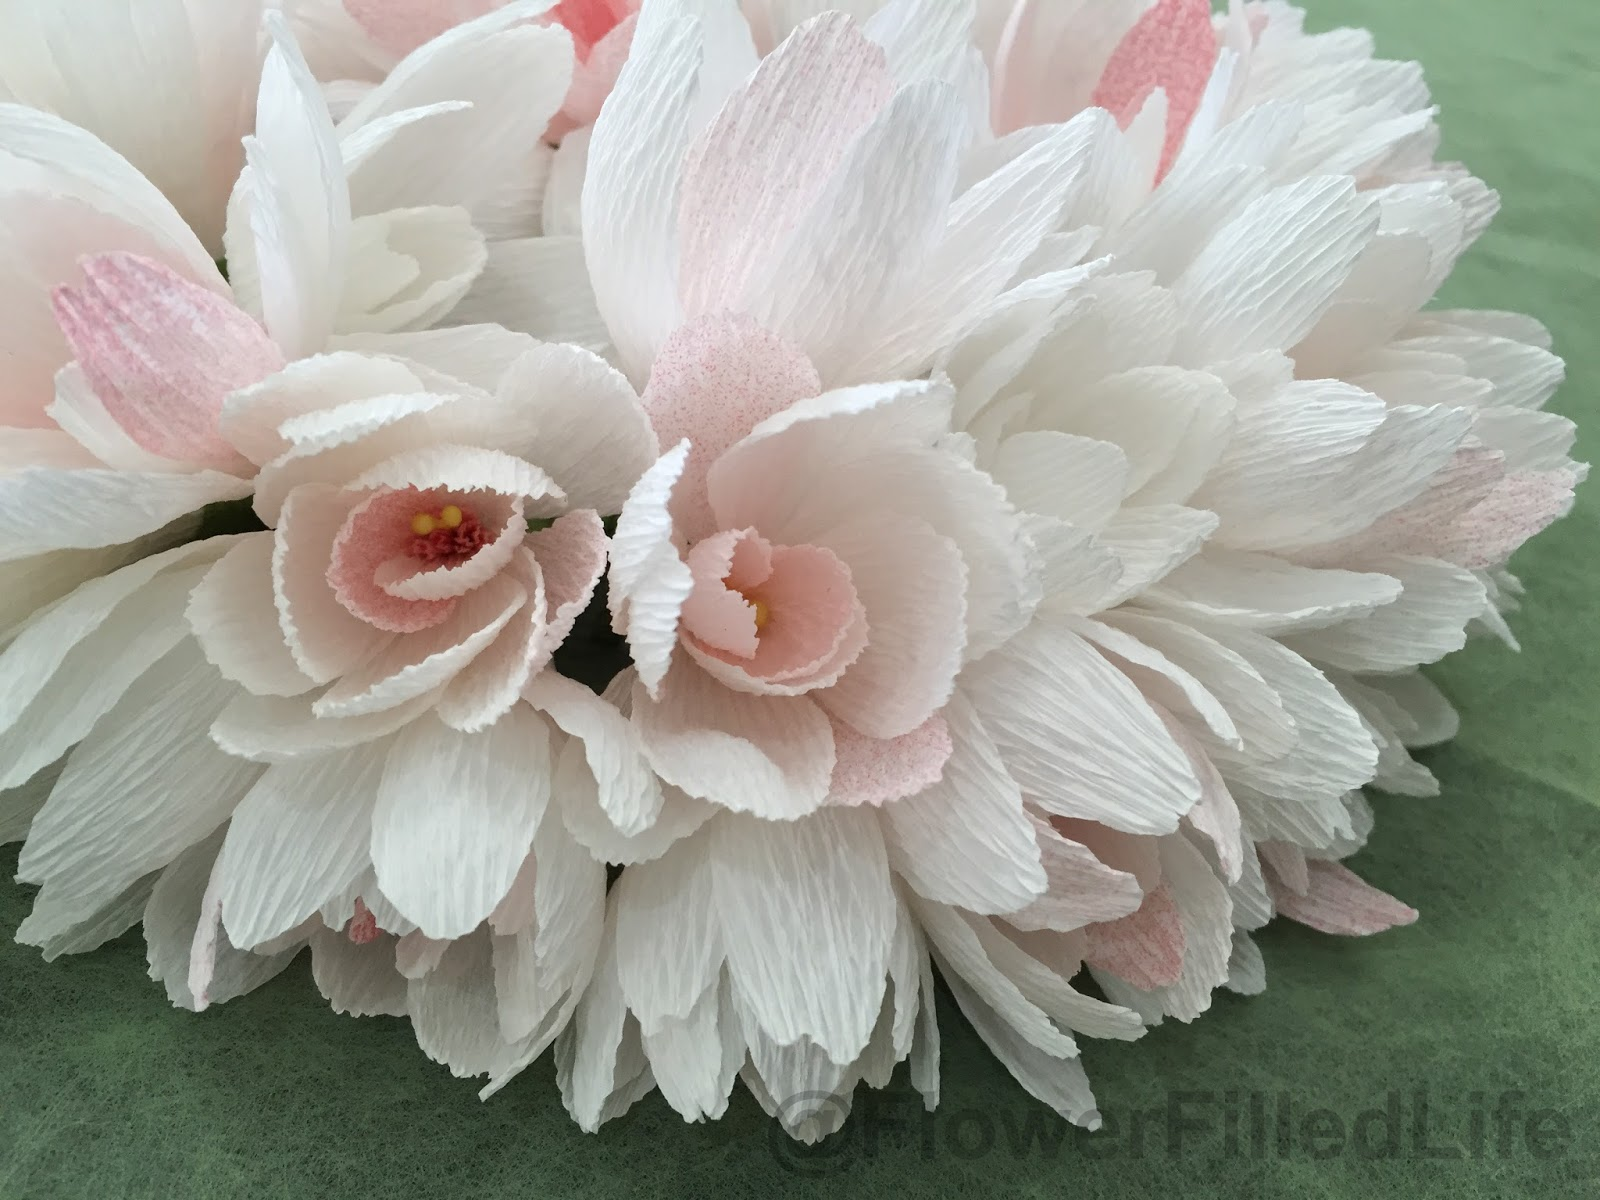 Handcrafted Flower Lei Made Of Tuberose Flowers Flower Filled Life